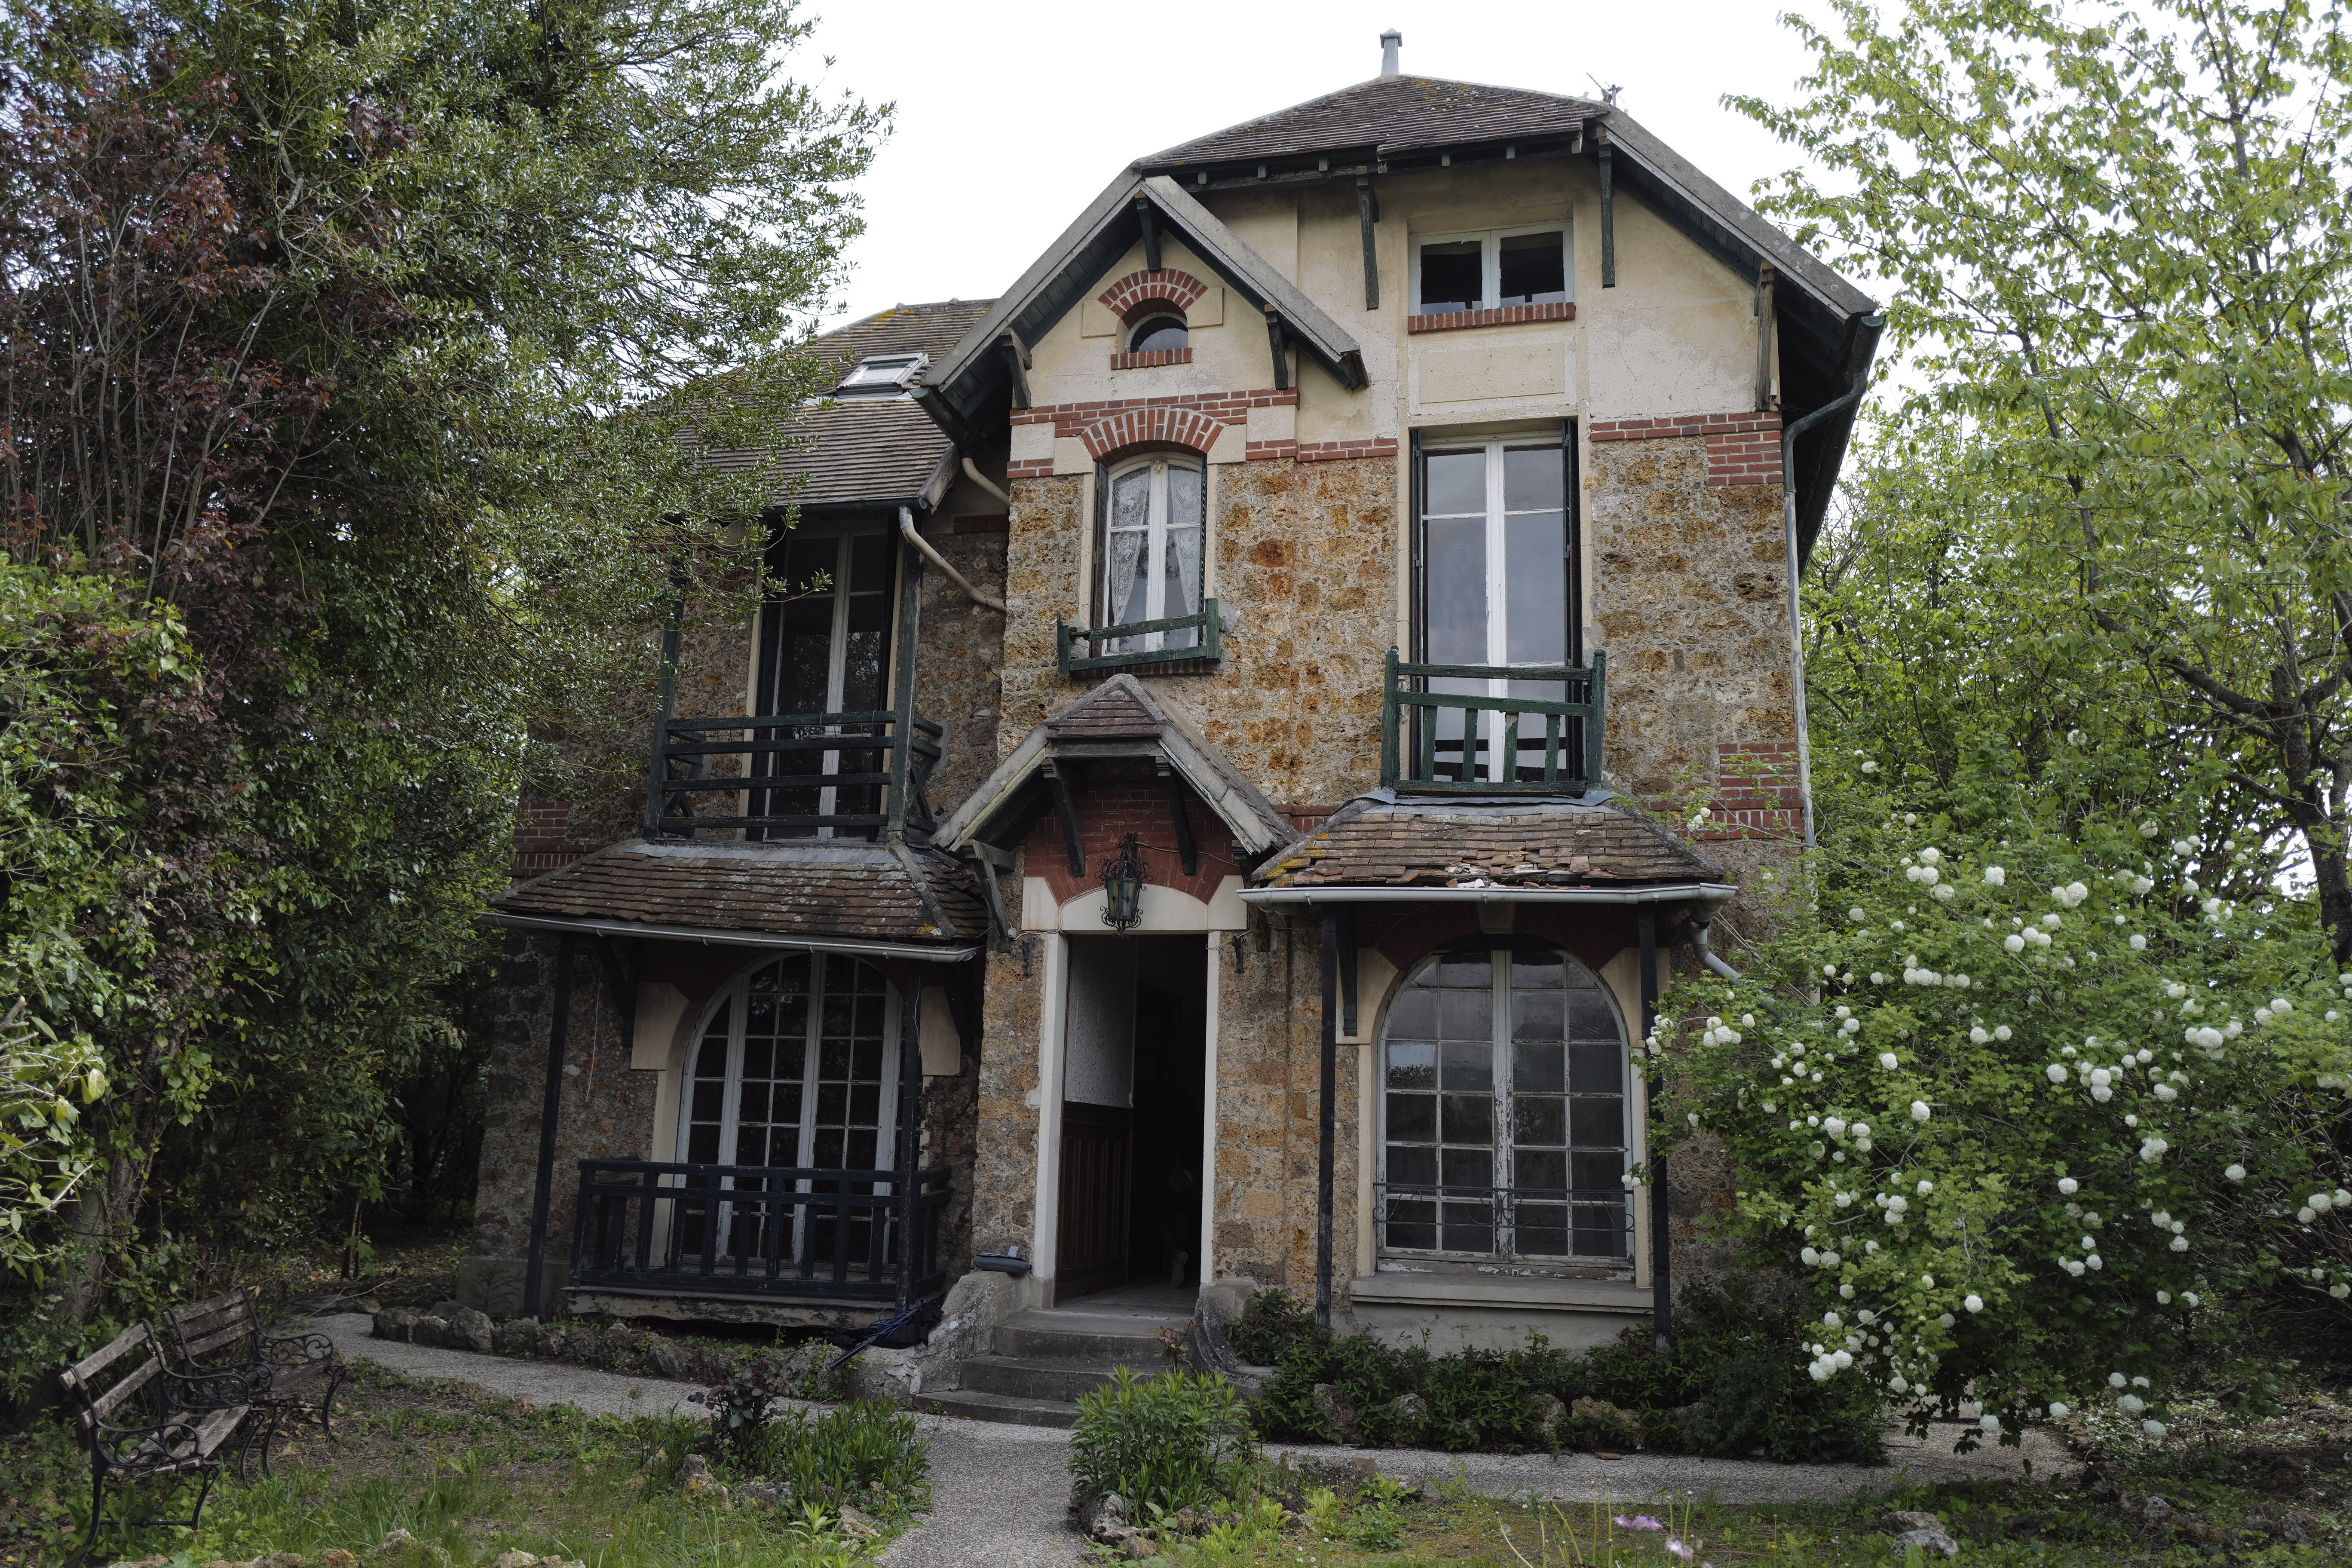 For Sale: Marie Curie's House